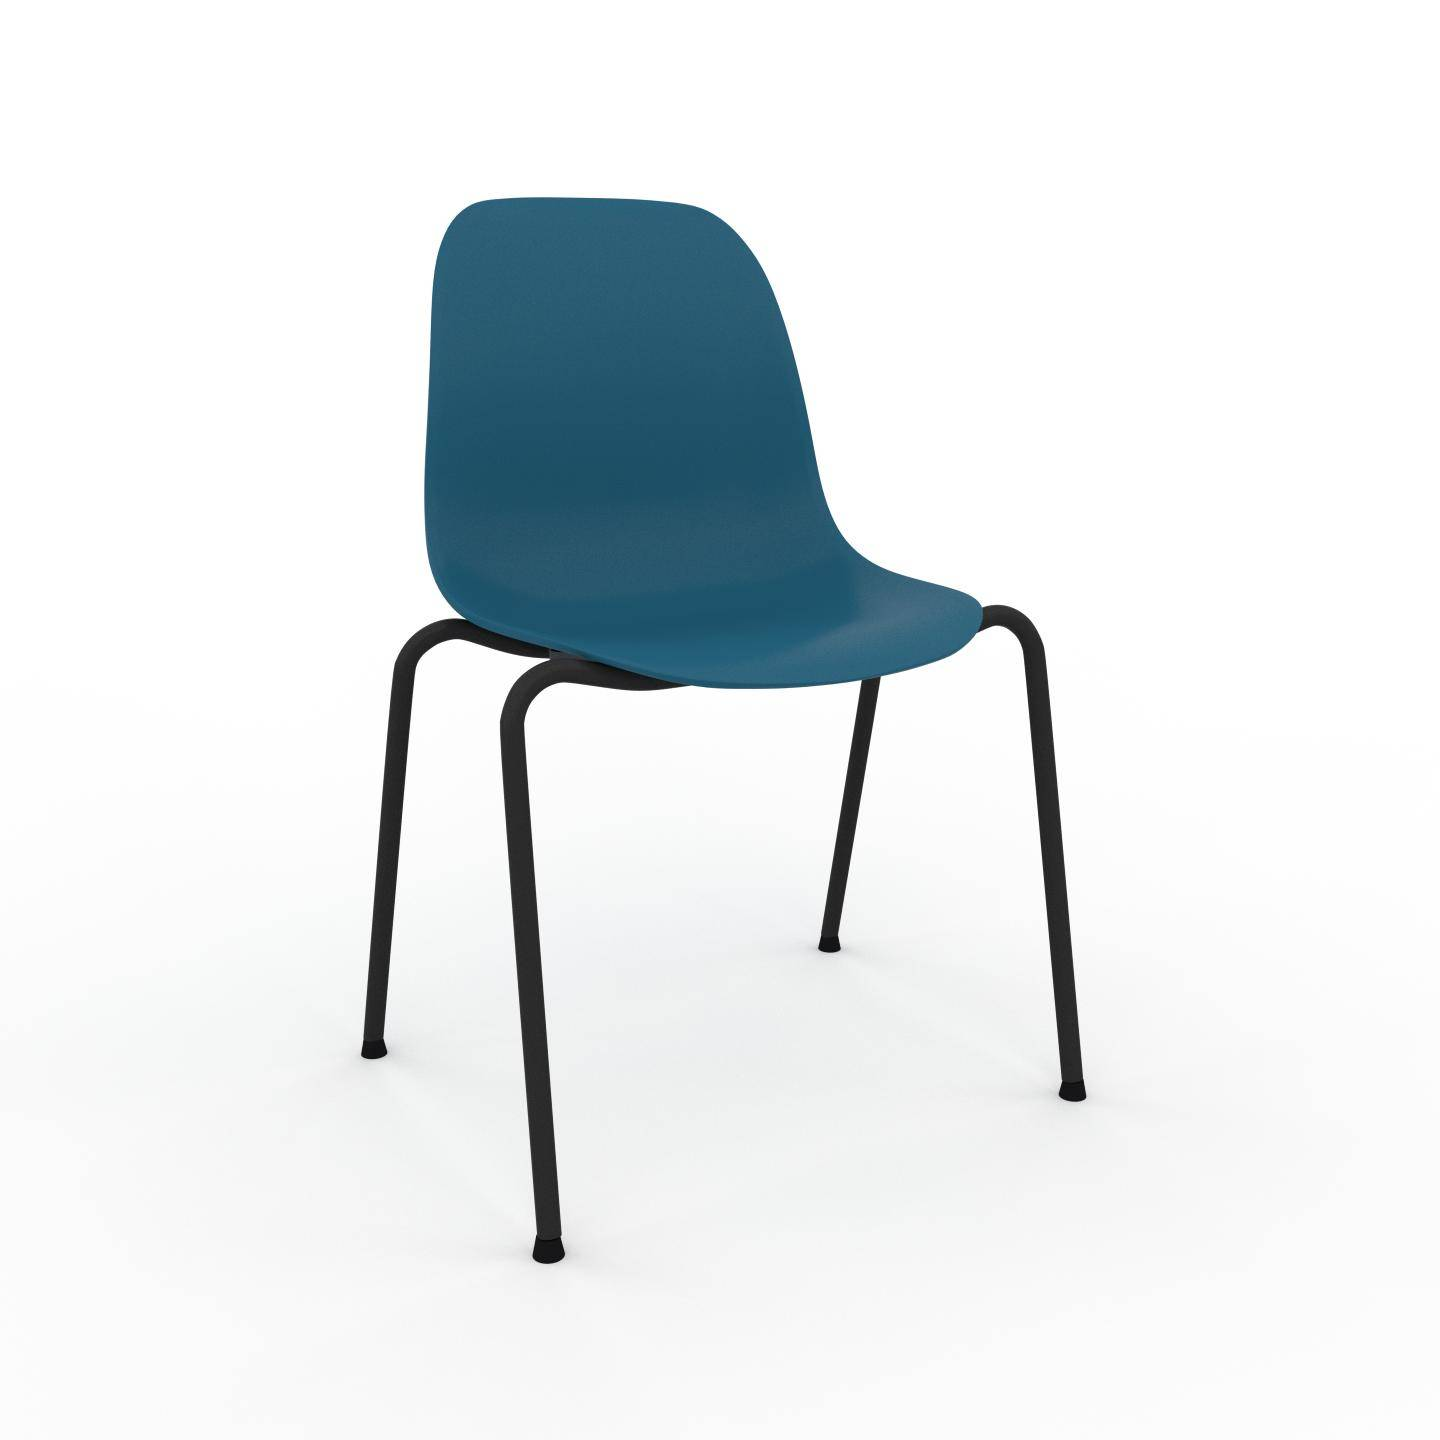 MYCS Chaise en bois bleu de 49 x 82 x 57 cm au design unique, configurable